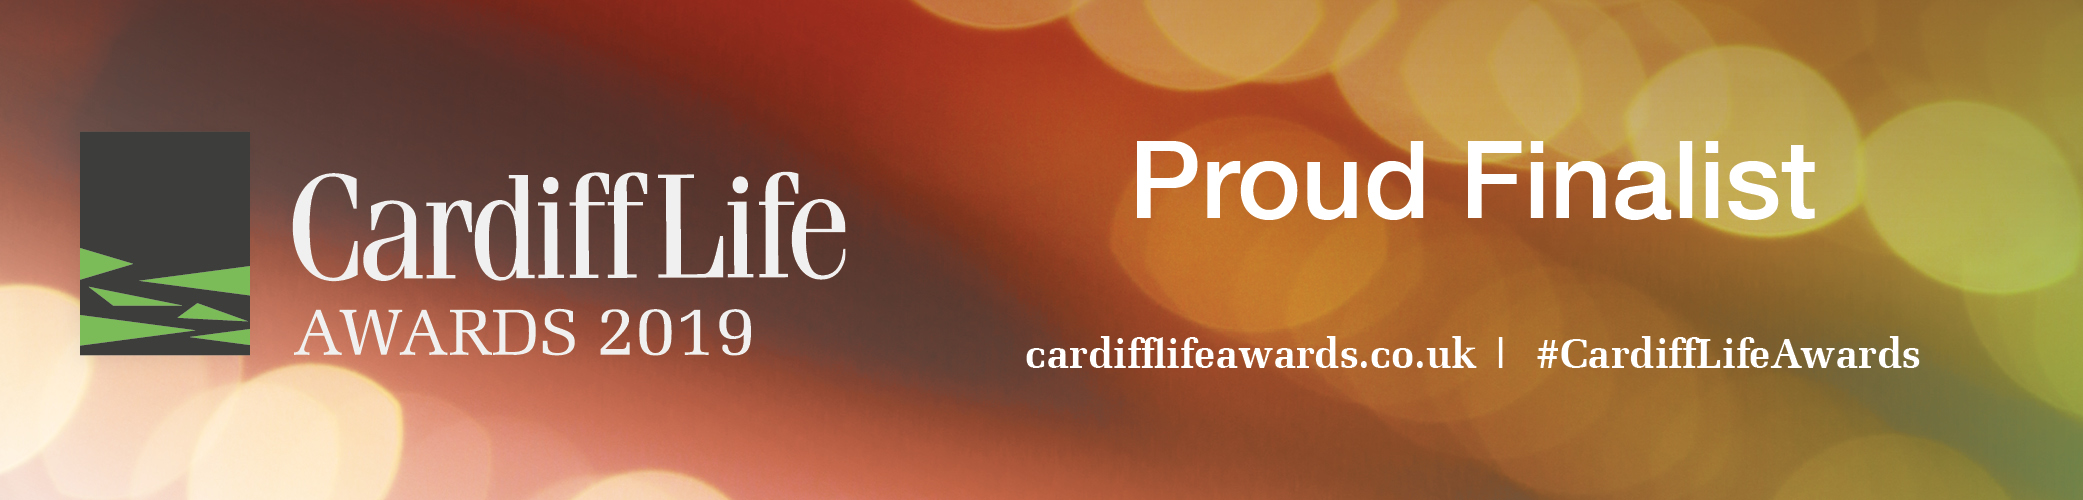 Proud Finalist at the Cardiff Life Awards